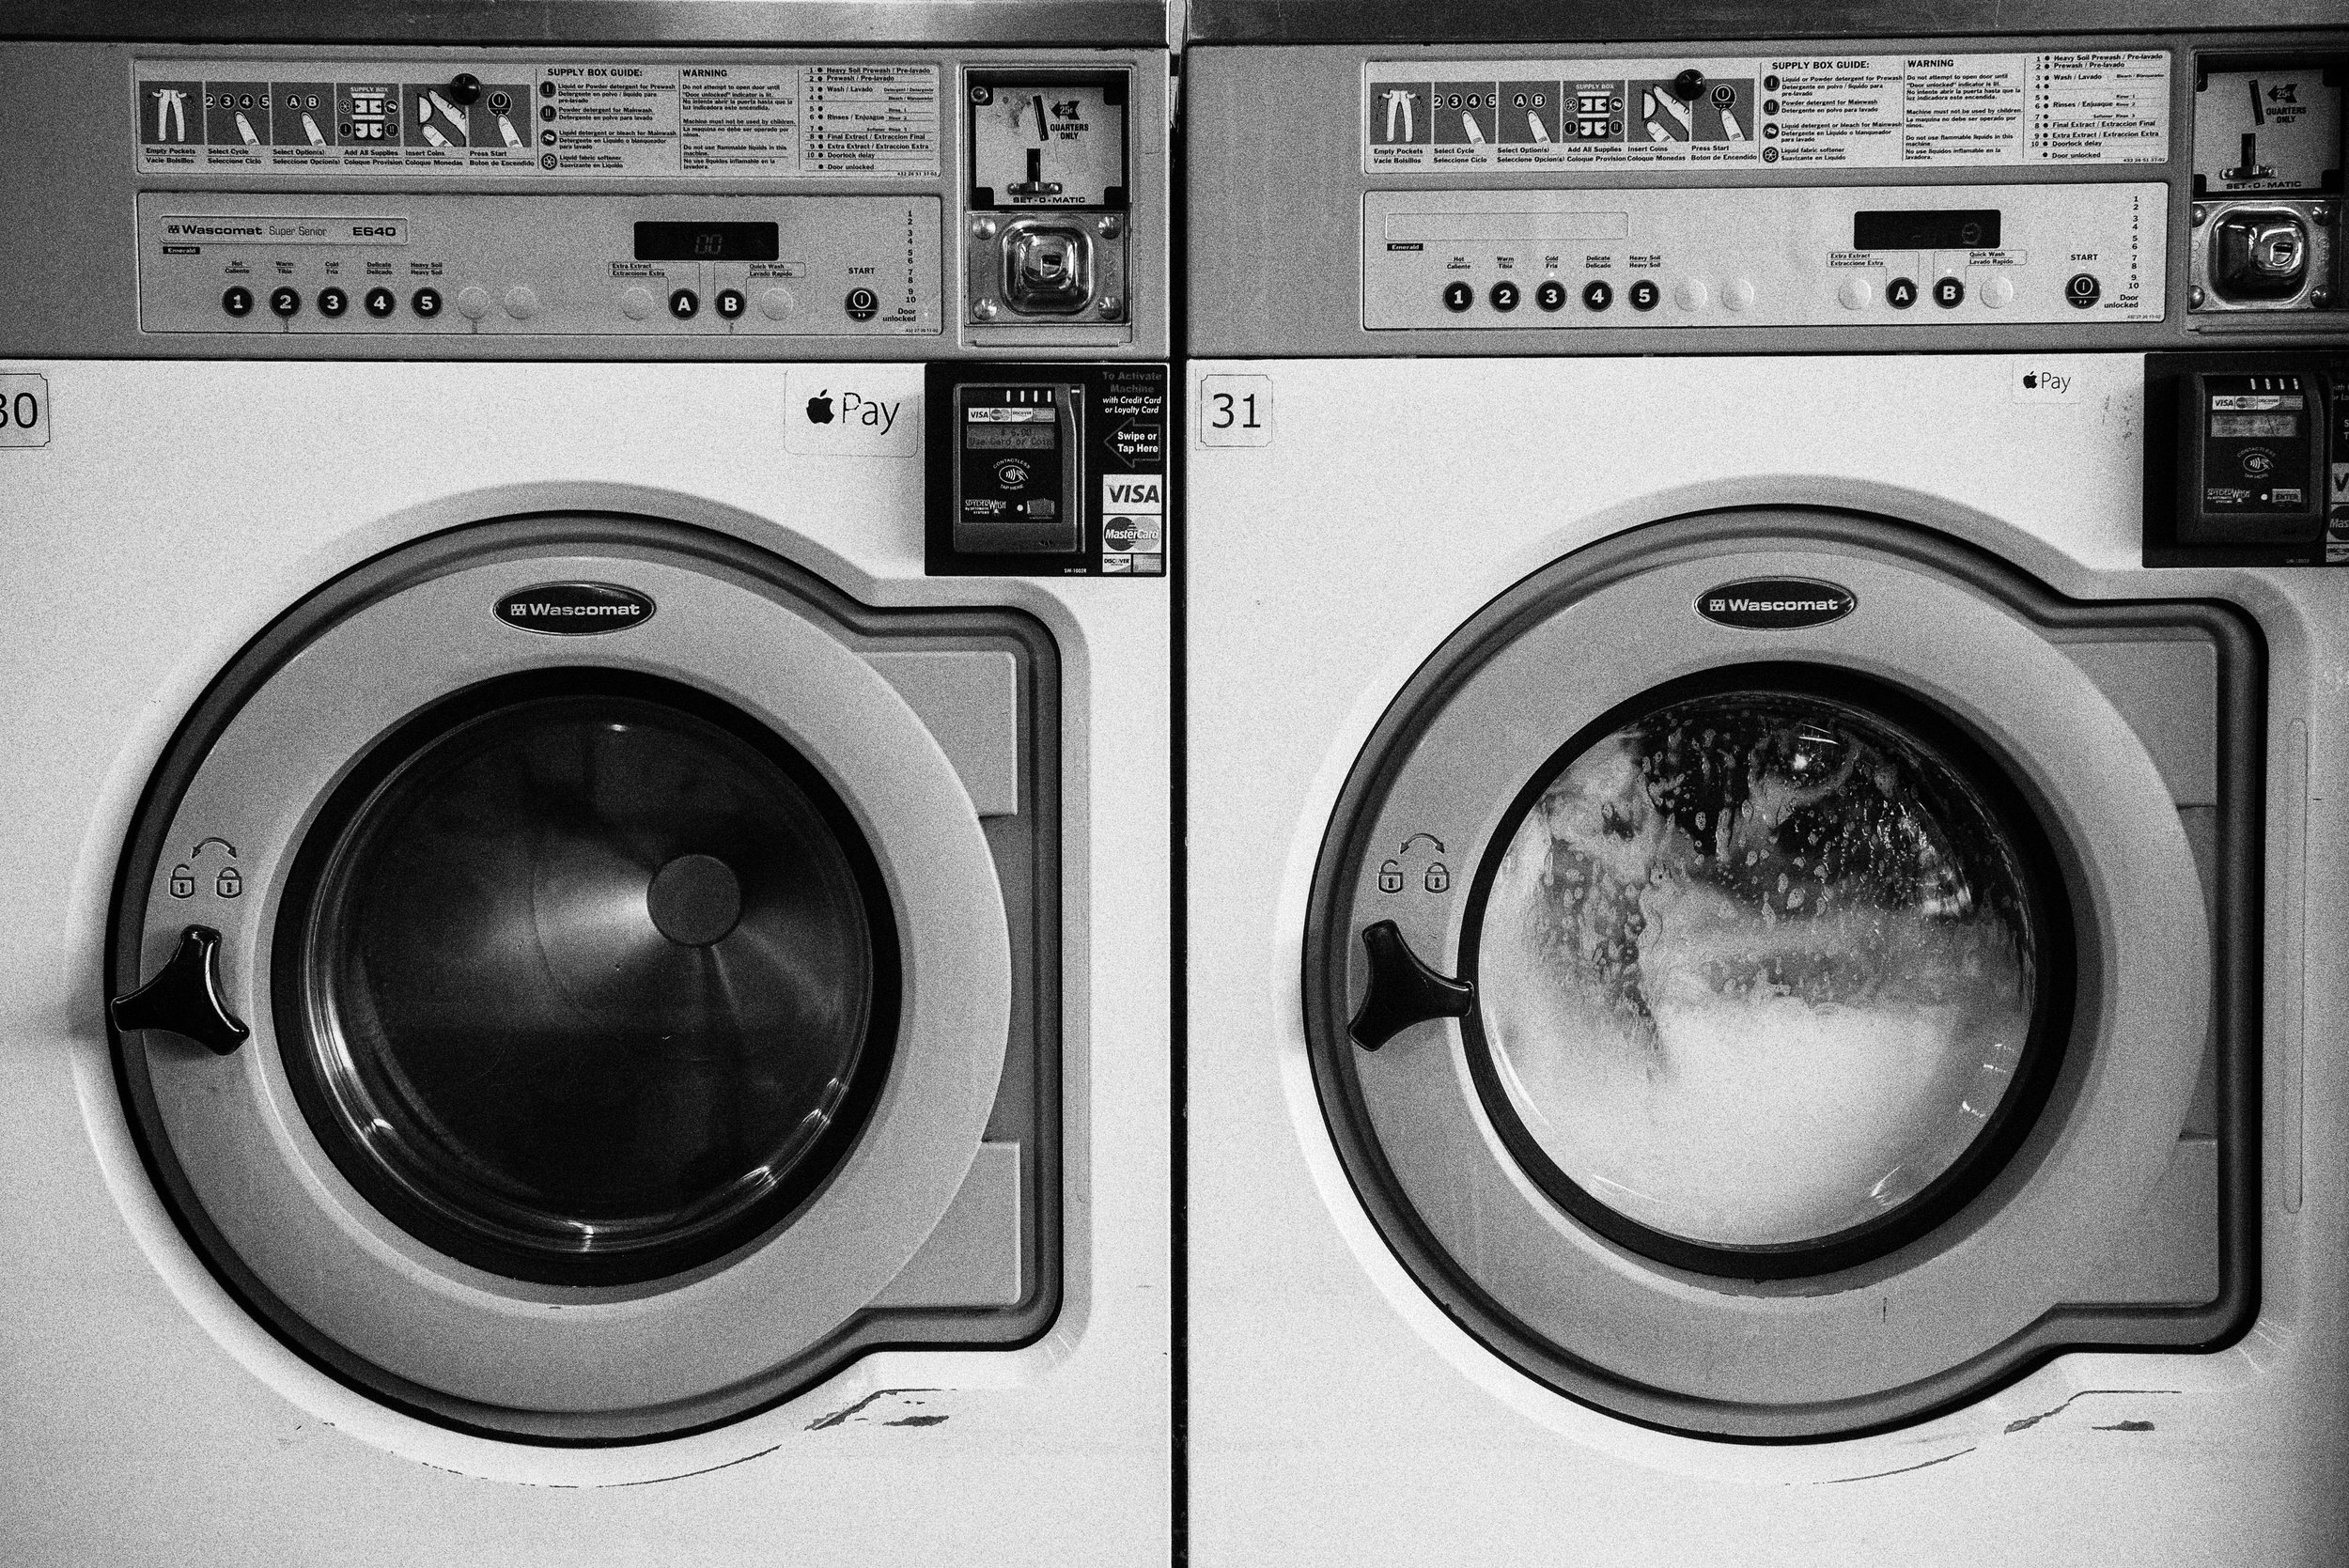 The single best piece of advice I can offer is to buy the appliances when you select them, and store them until installation. I have experienced the pain of selecting an appliance, and waiting too long to buy it as it became discontinued by the manufacturer and then my custom design had to be modified. Change order! -